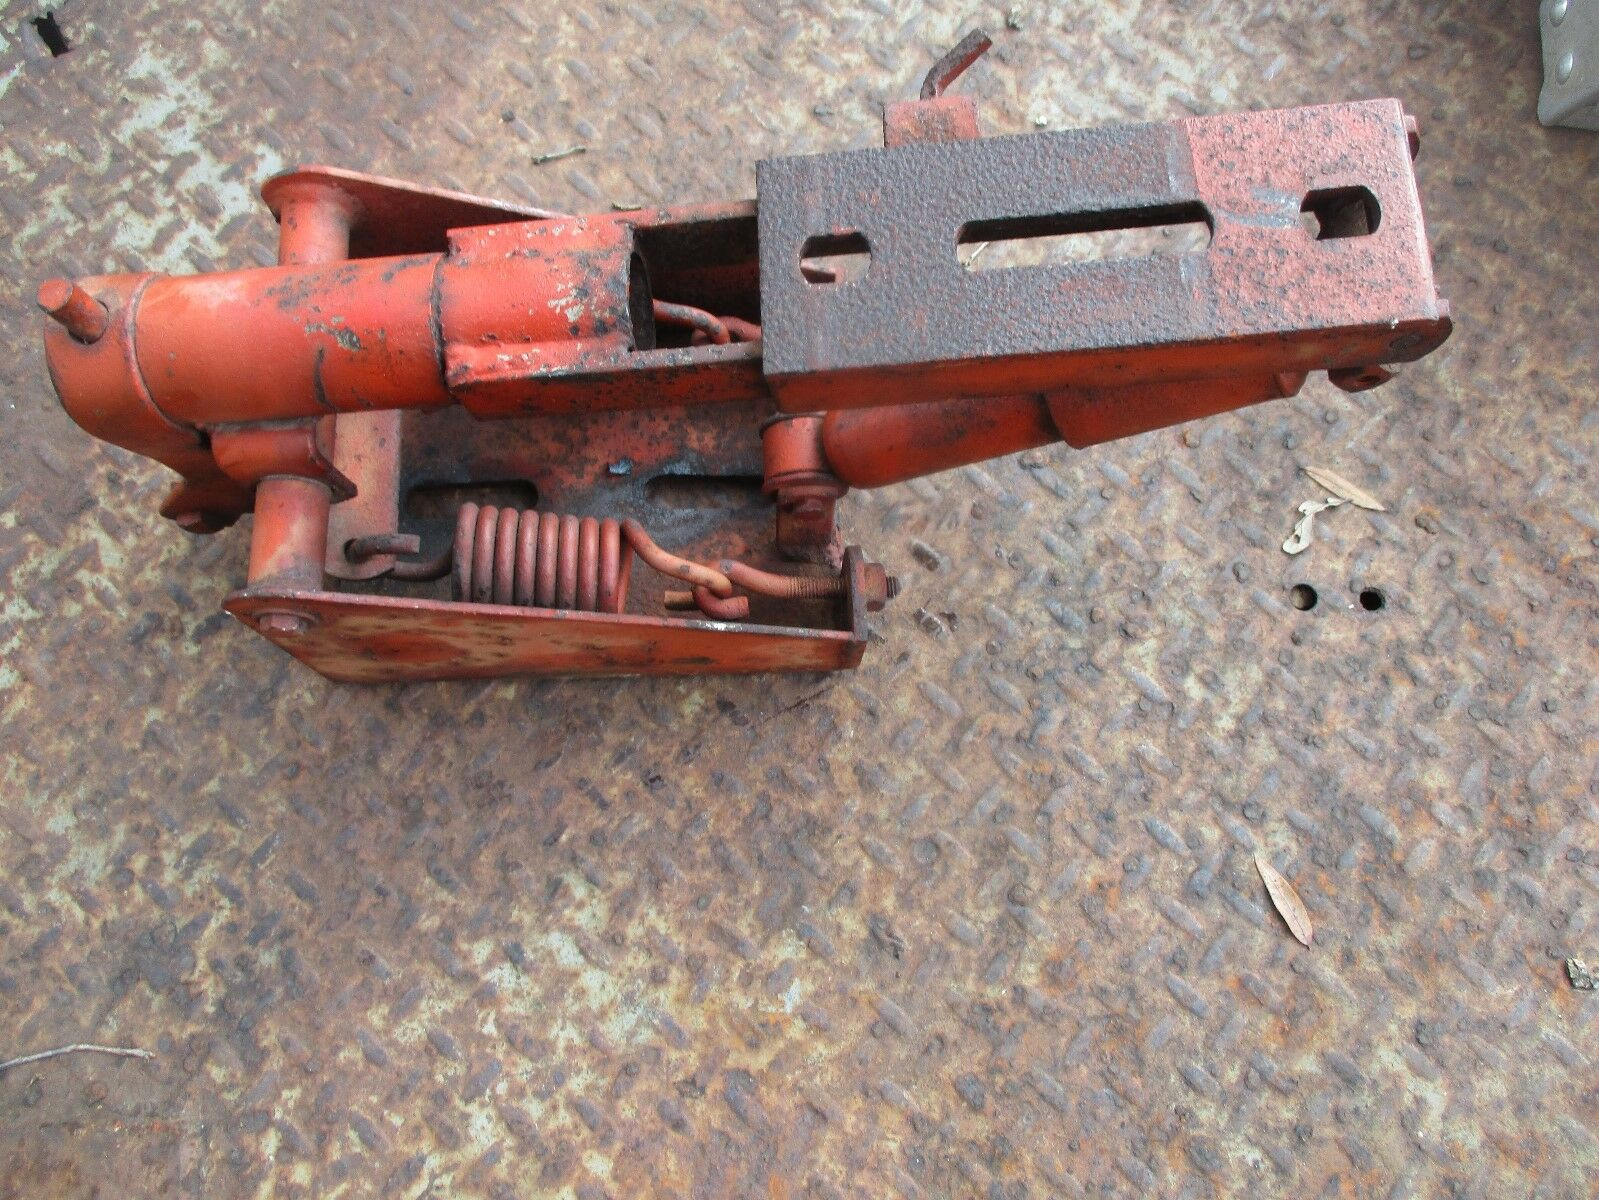 1951 Massey Harris Pony Gas Farm Tractor Seat Frame Free Shiping Zenith Carburetor Ford 2000 1 Of 5only Available